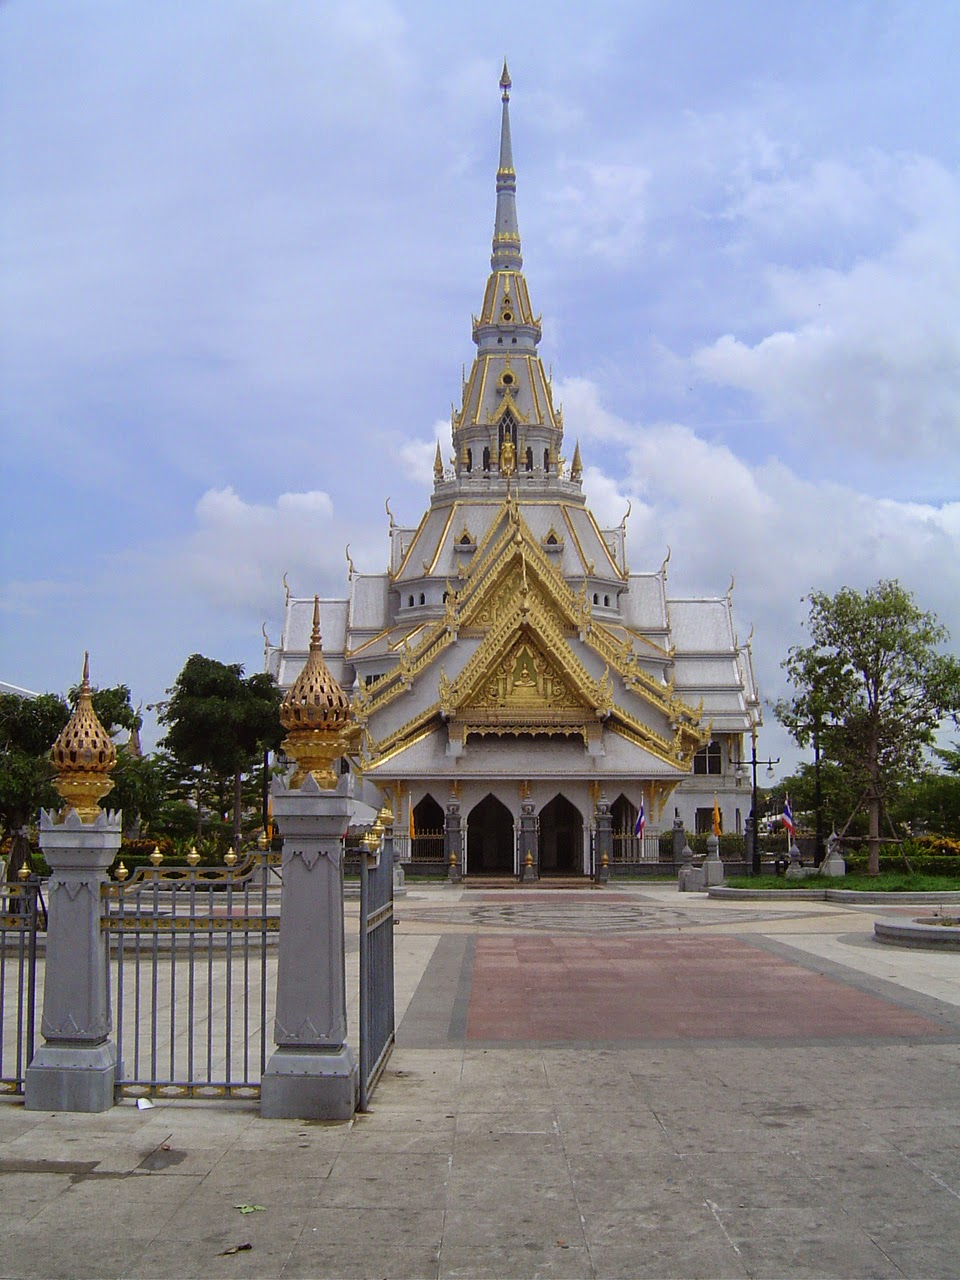 Wat Sothon in Chachoengsao town